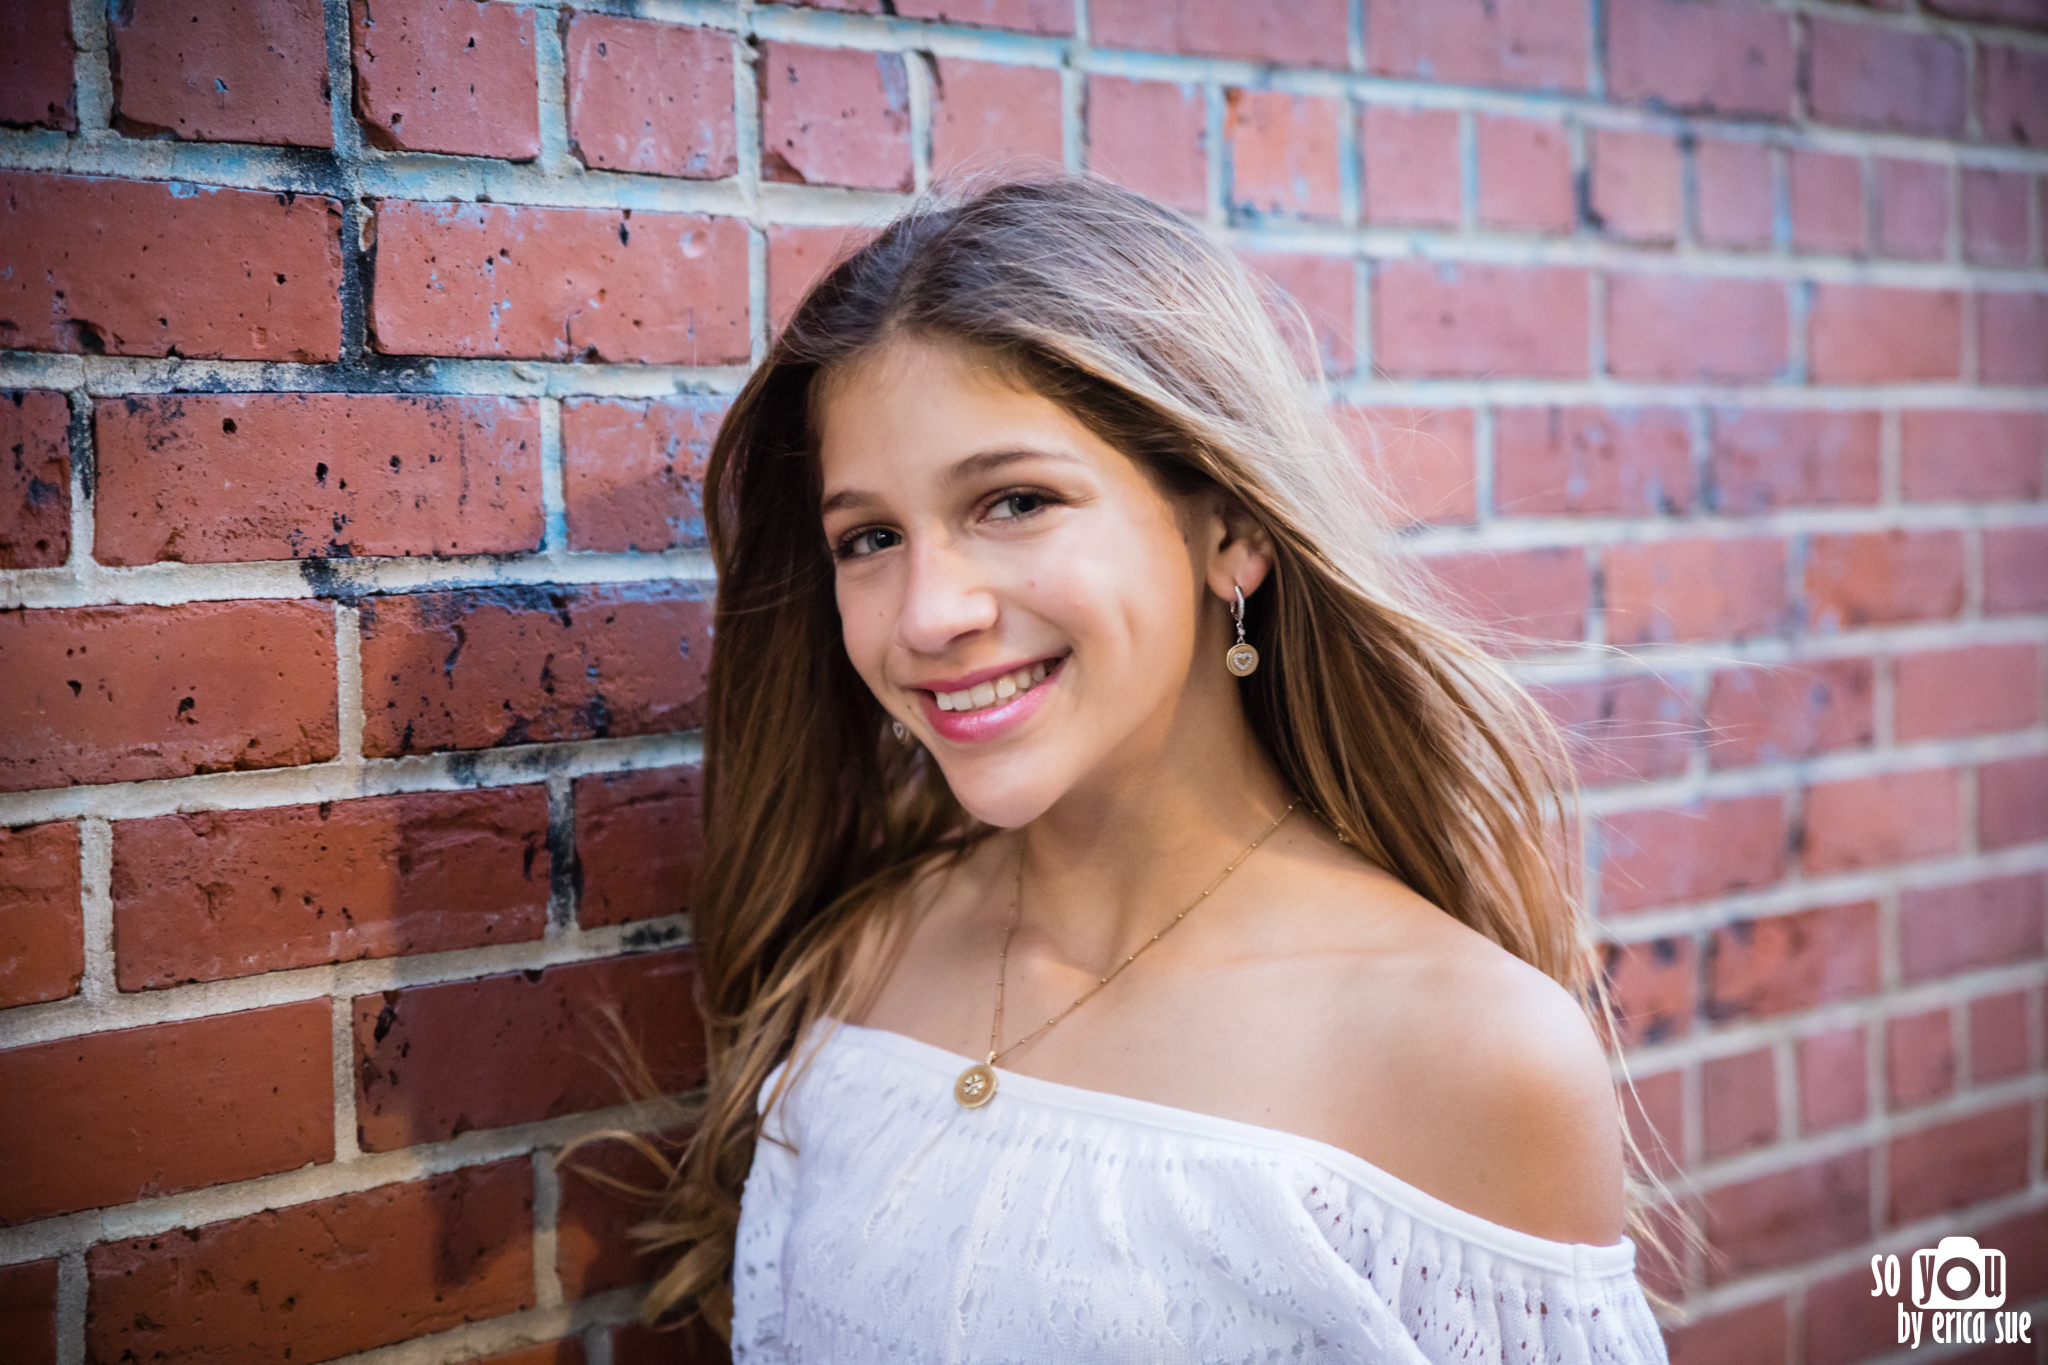 bat-mitzvah-pre-shoot-downtown-ft-lauderdale-teen-so-you-by-erica-sue-4458.jpg